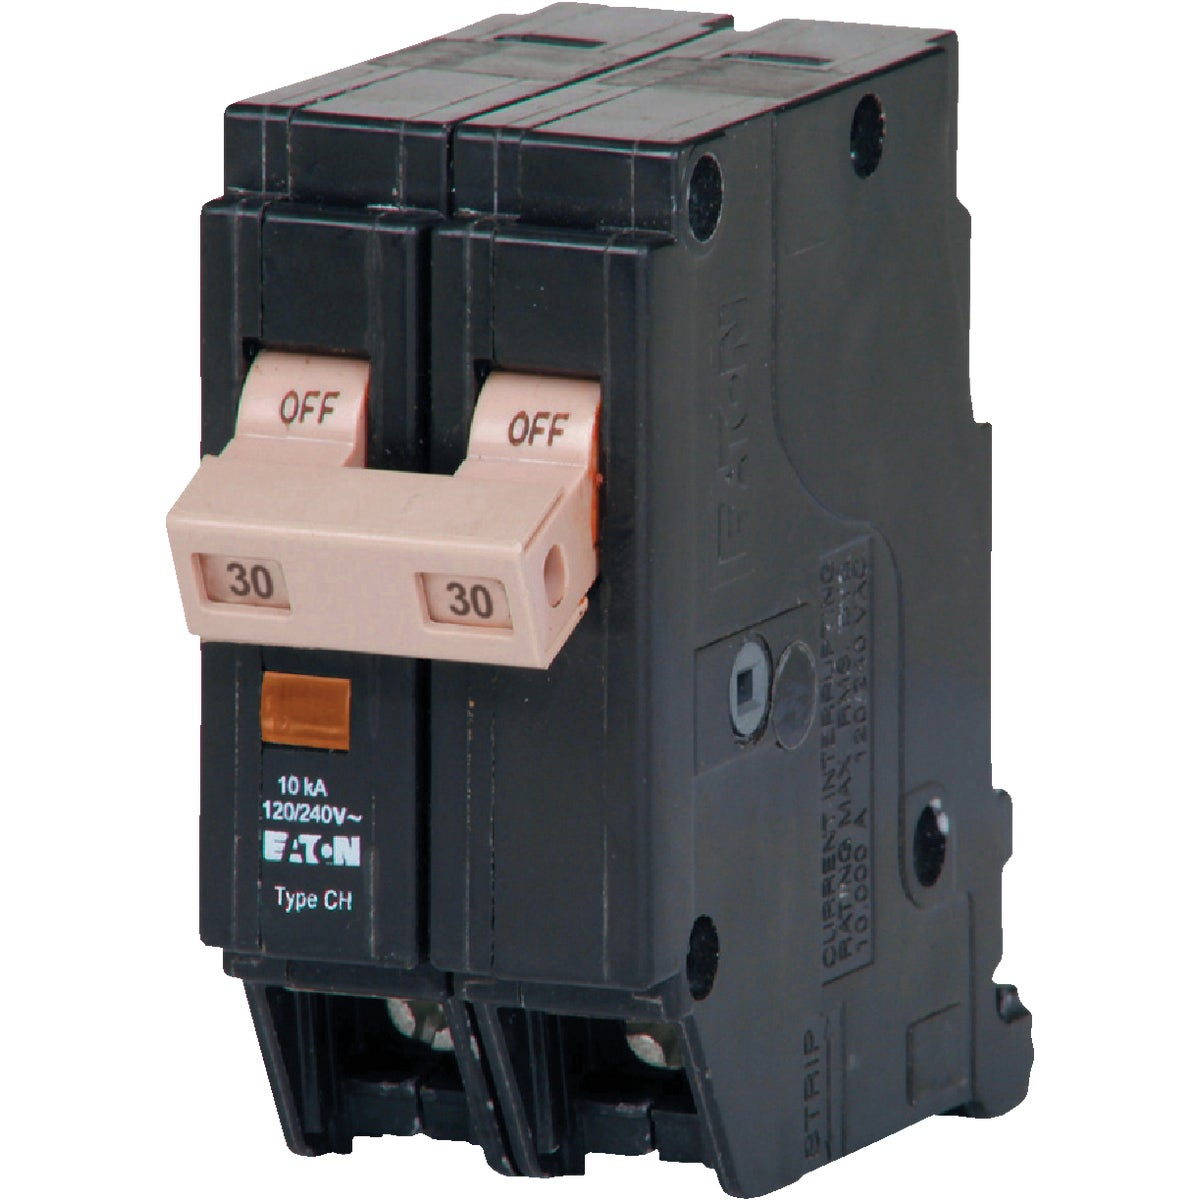 30A 2P CIRCUIT BREAKER - CHF230 by Eaton Corporation